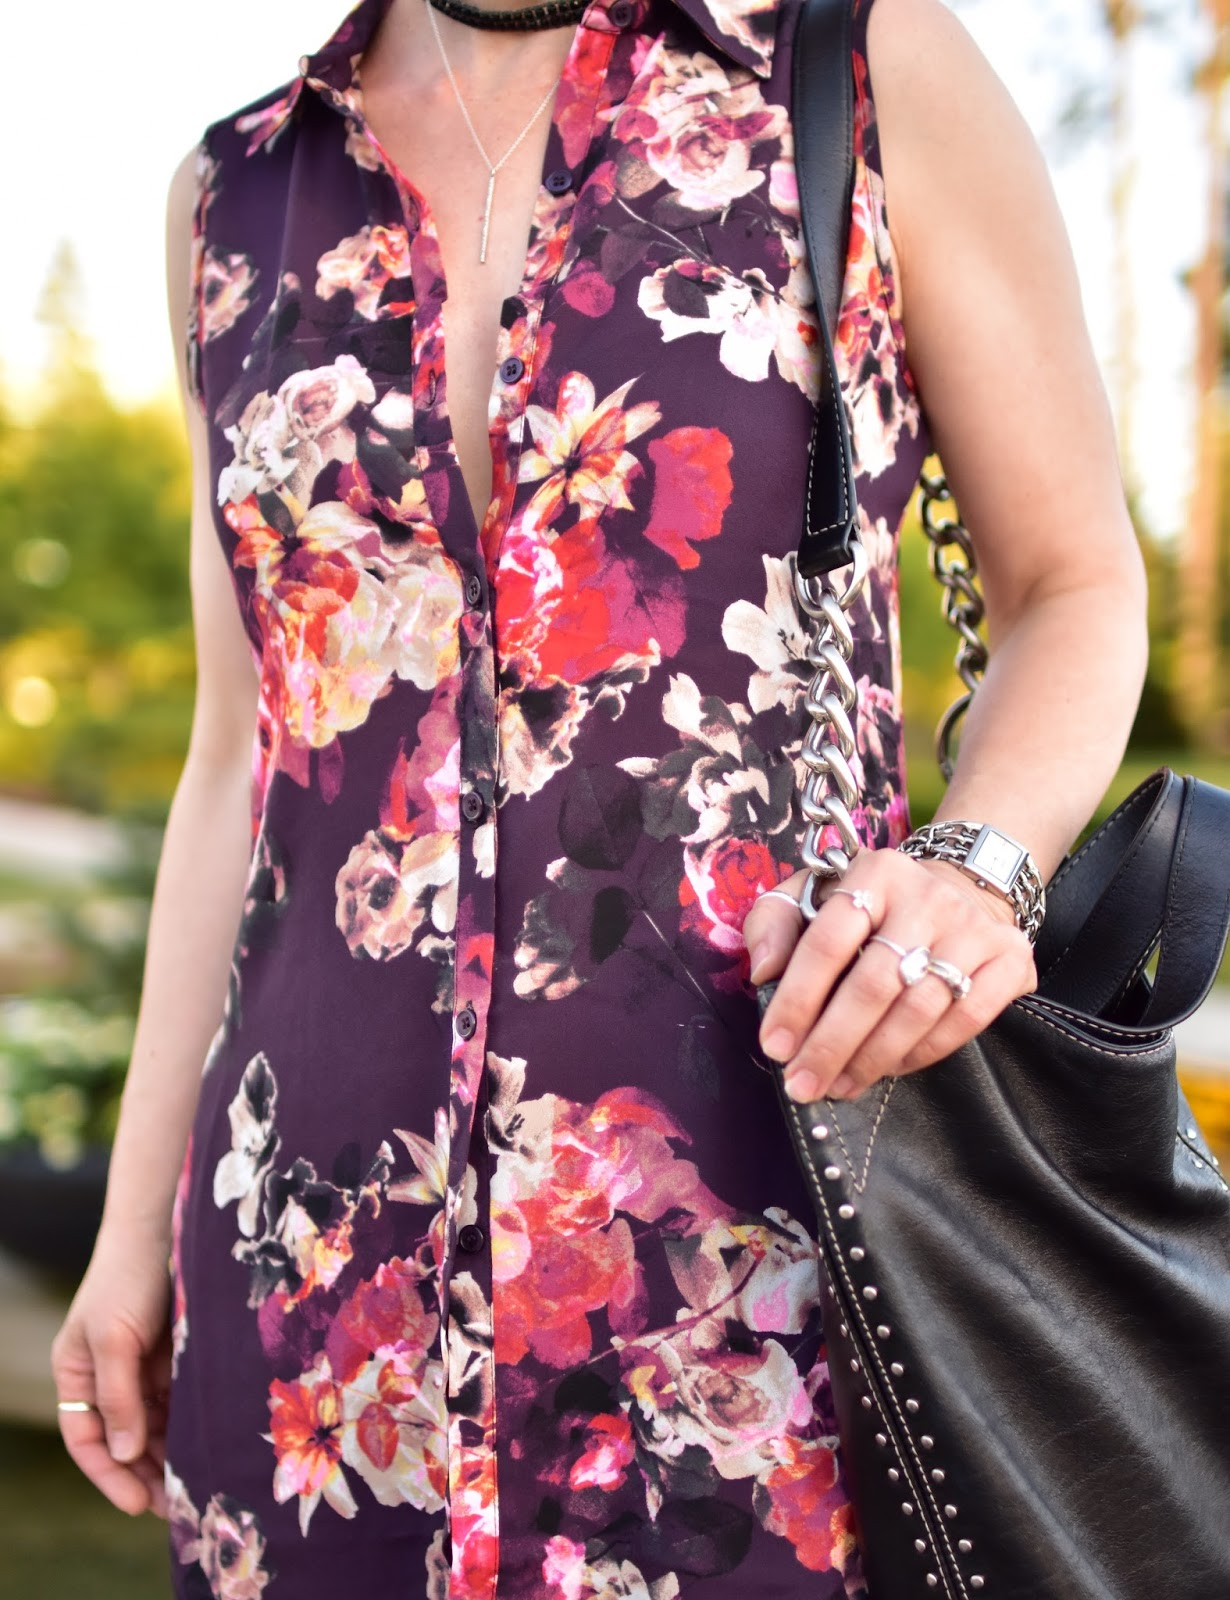 floral tunic-style blouse, Michael Kors bag